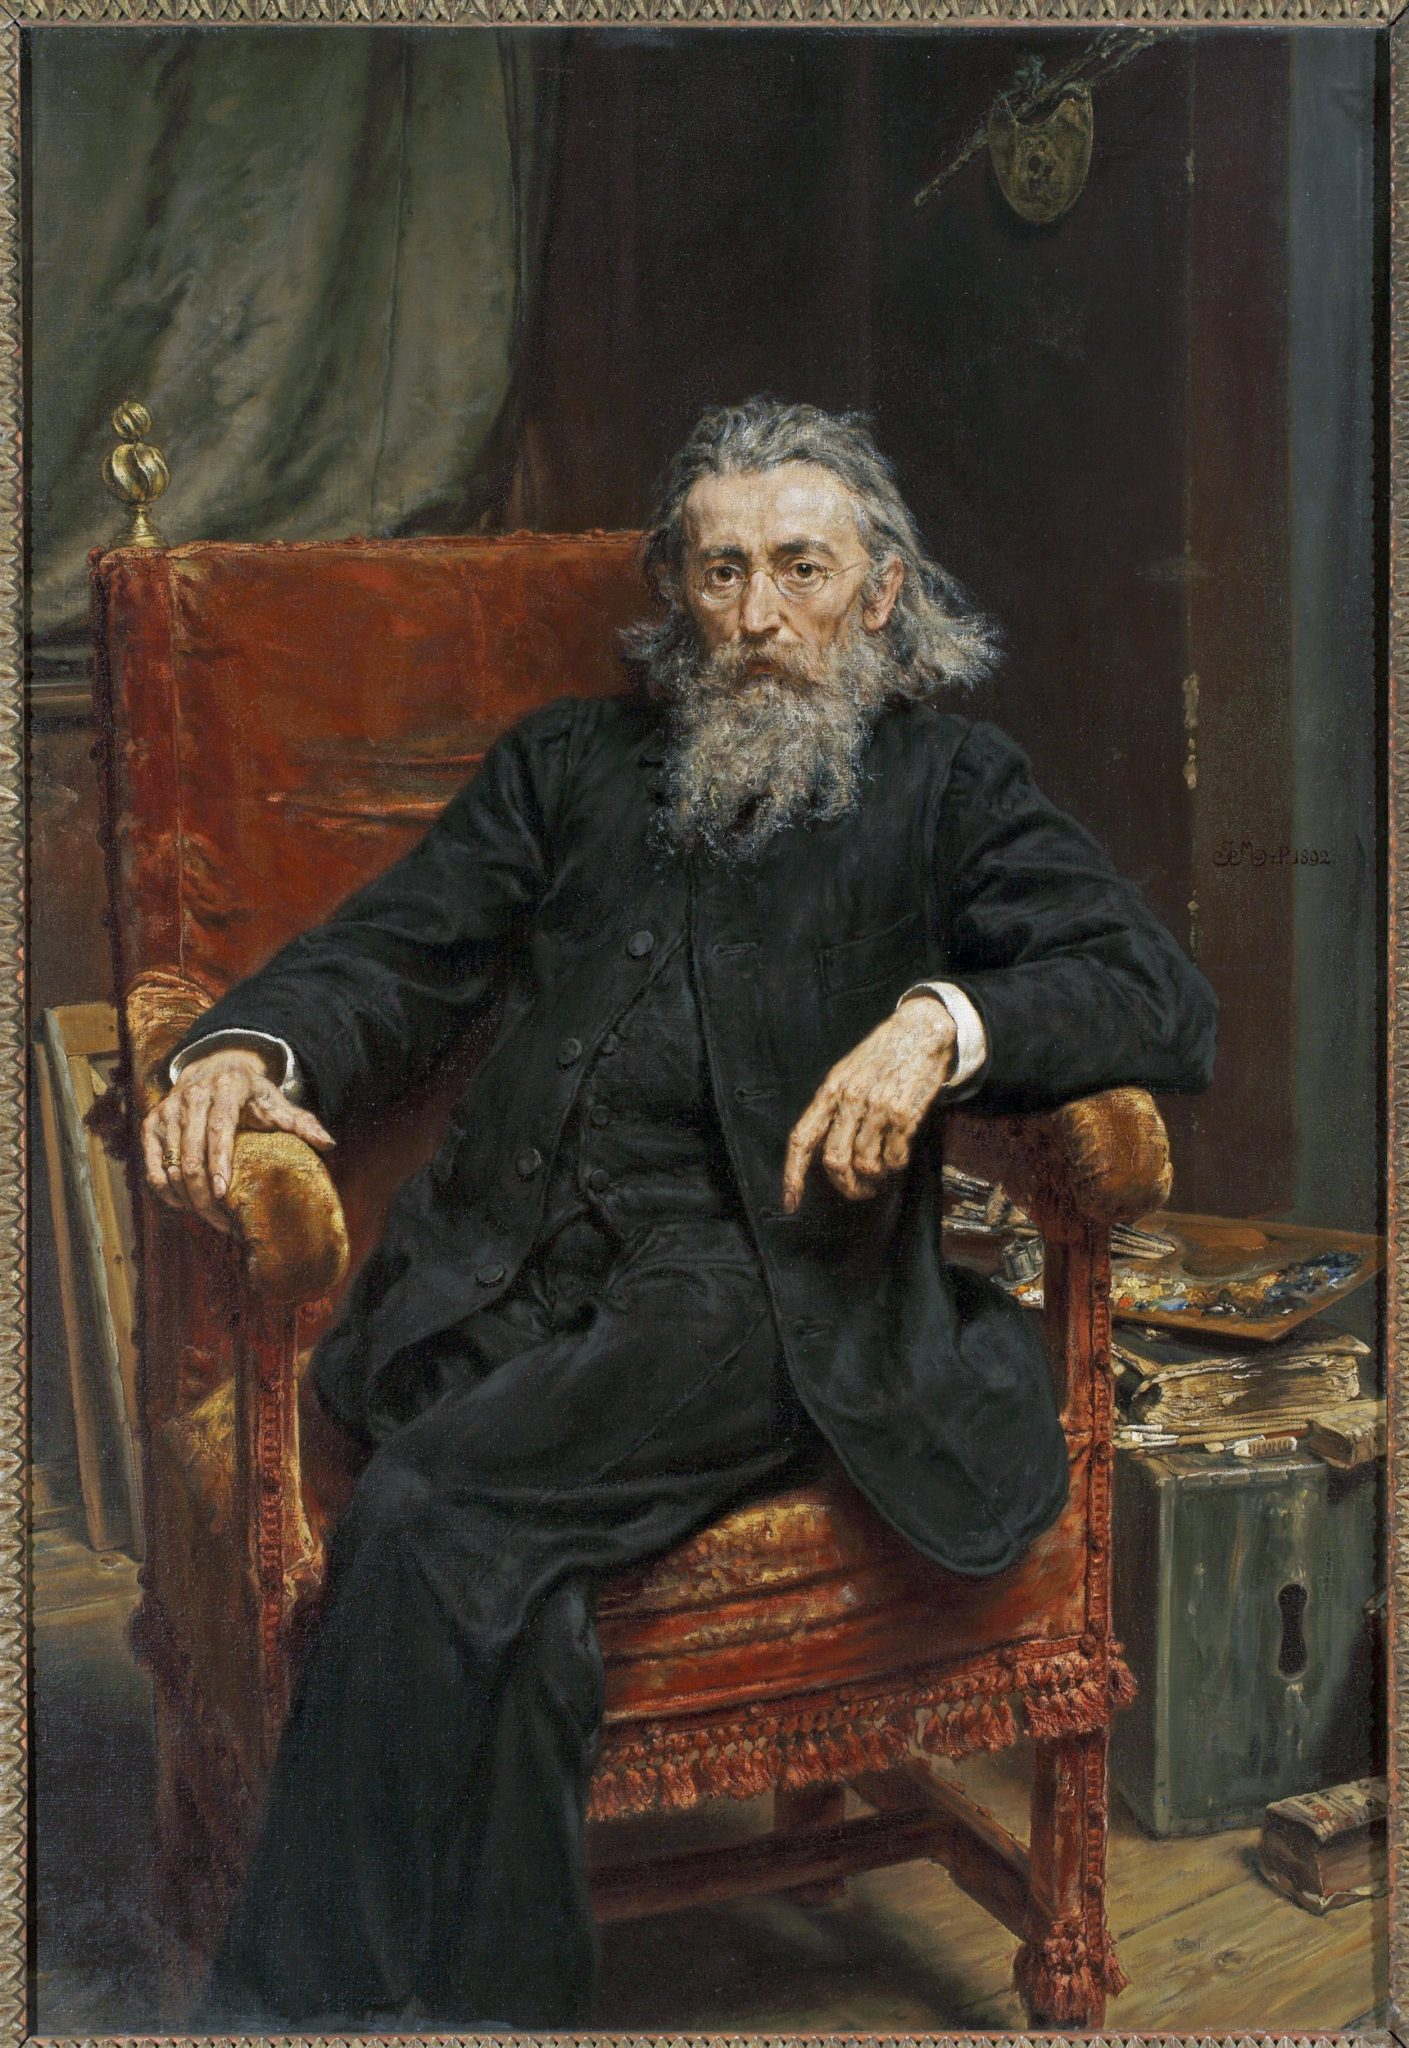 Jan Matejko, Self-portrait, 1892